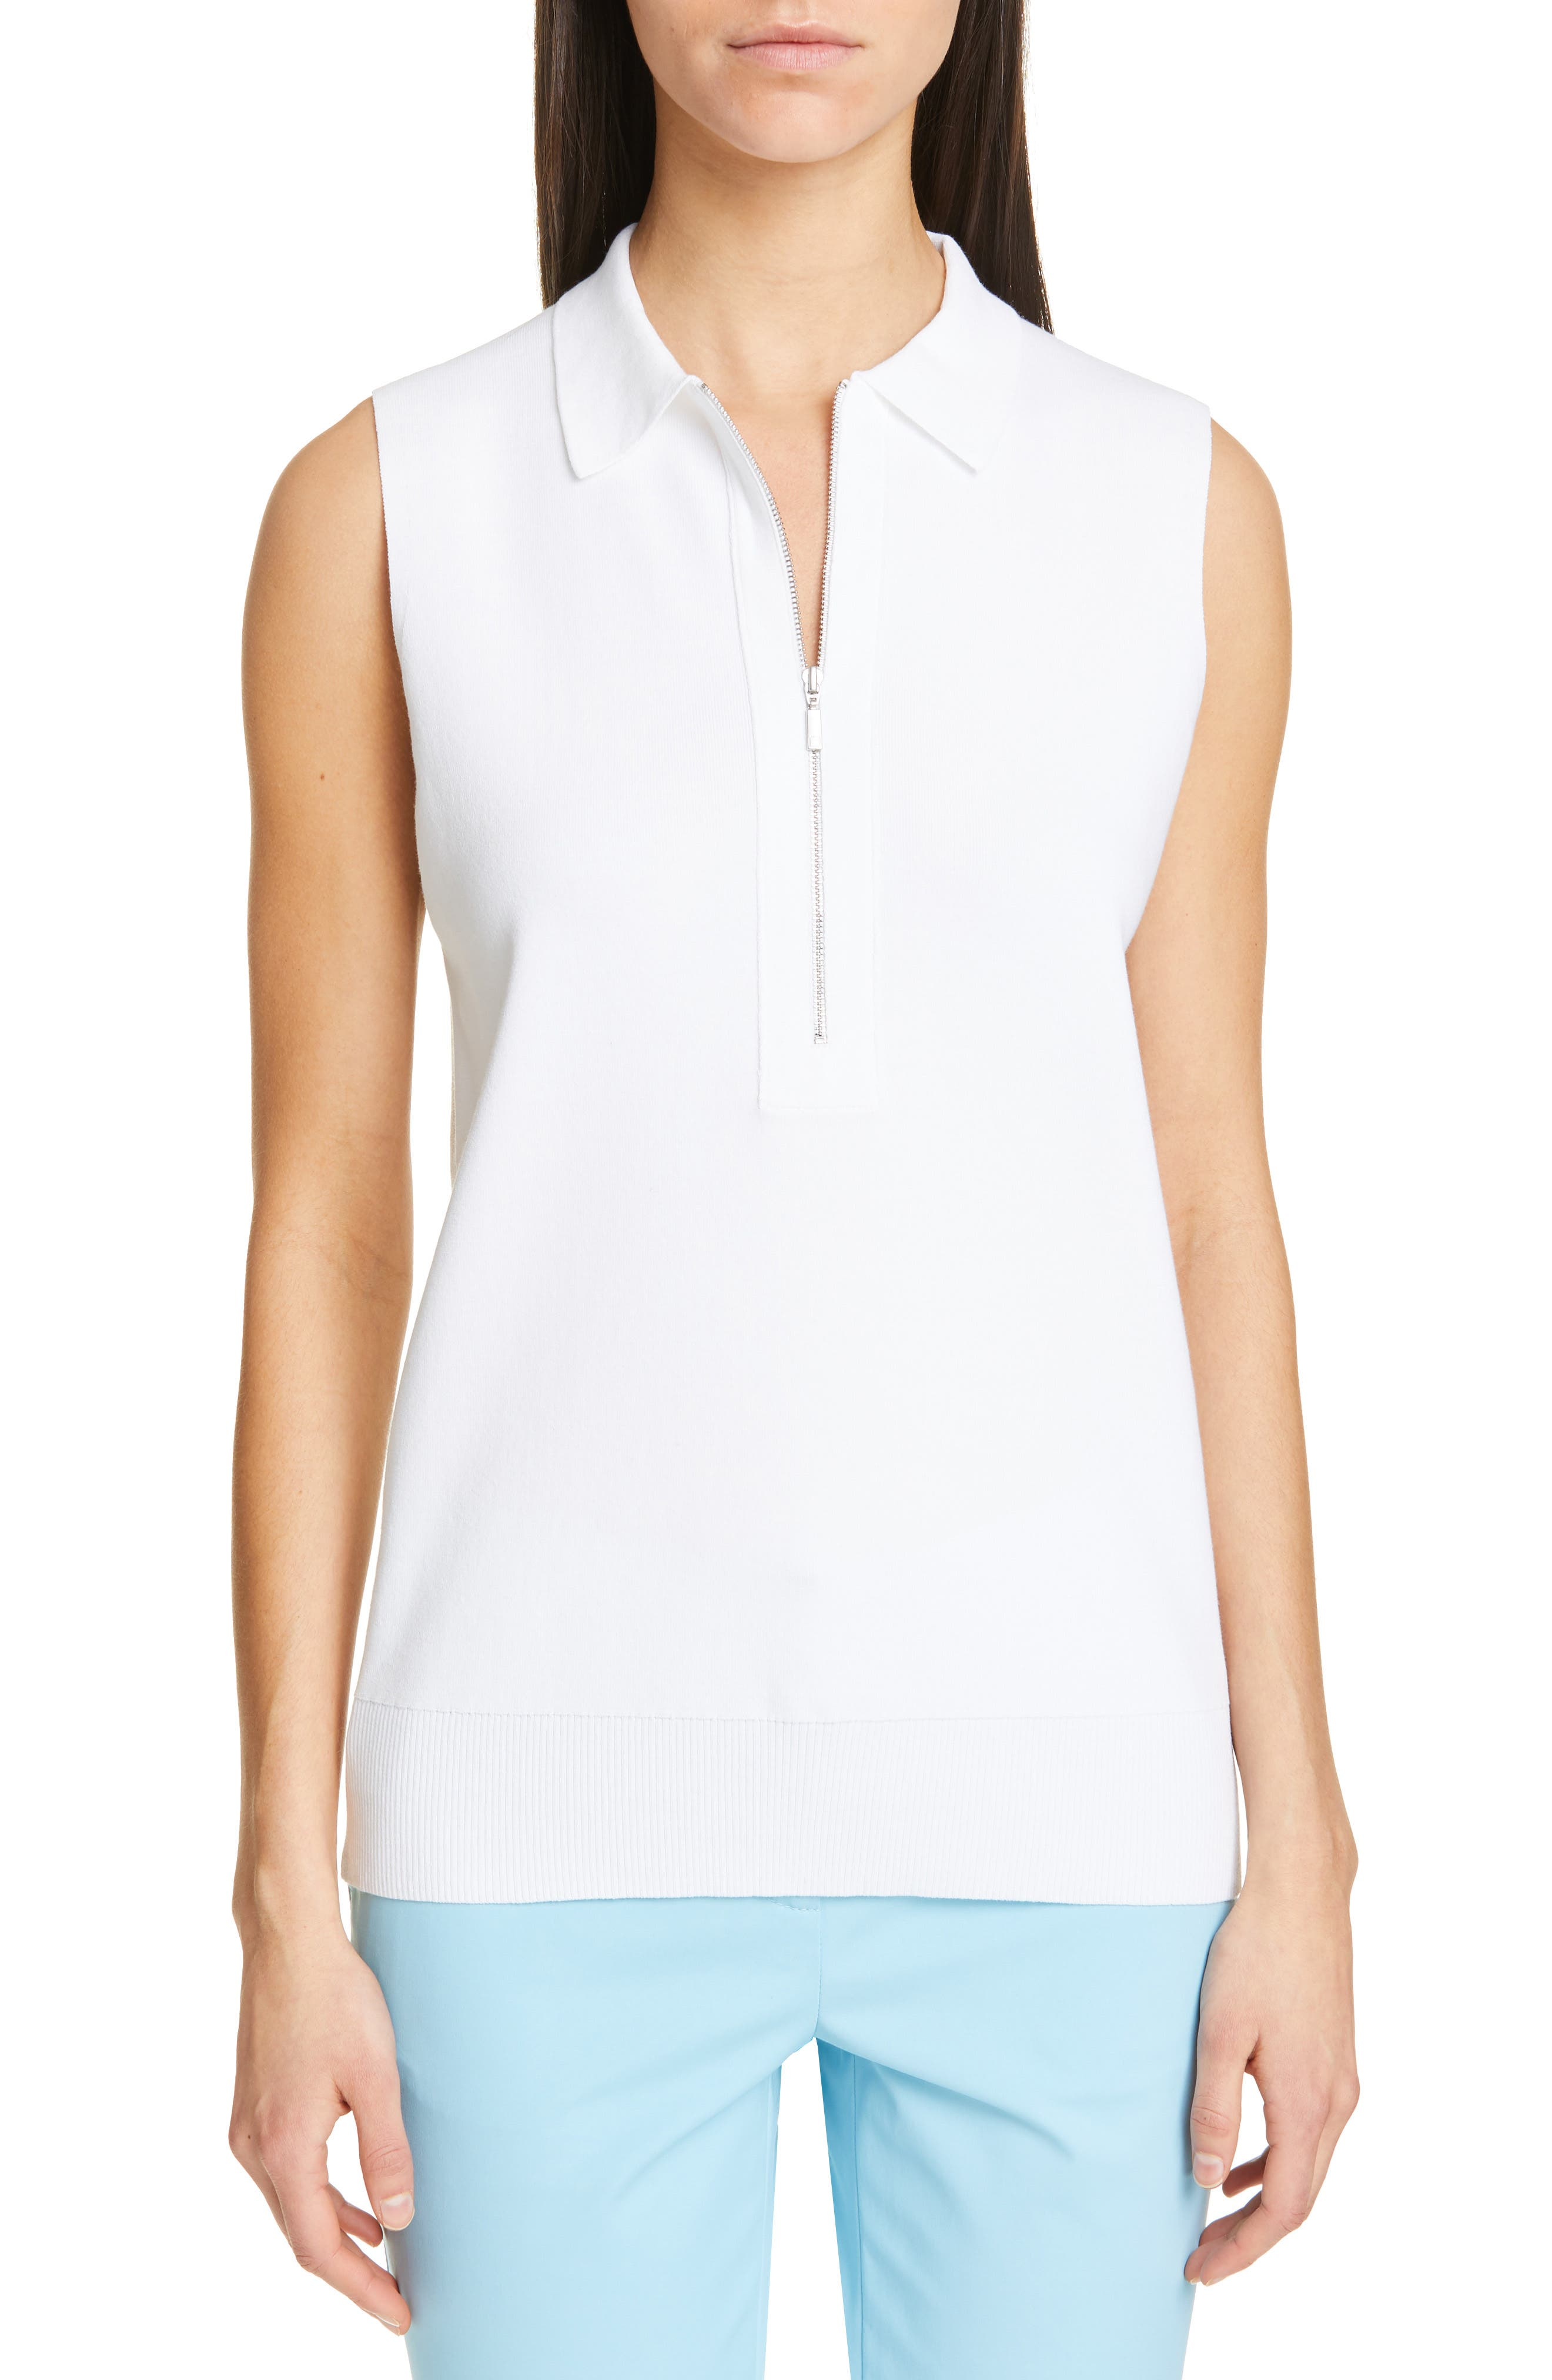 LAFAYETTE 148 NEW YORK Lafayette Fitted Sleeveless Polo Sweater, Main, color, WHITE